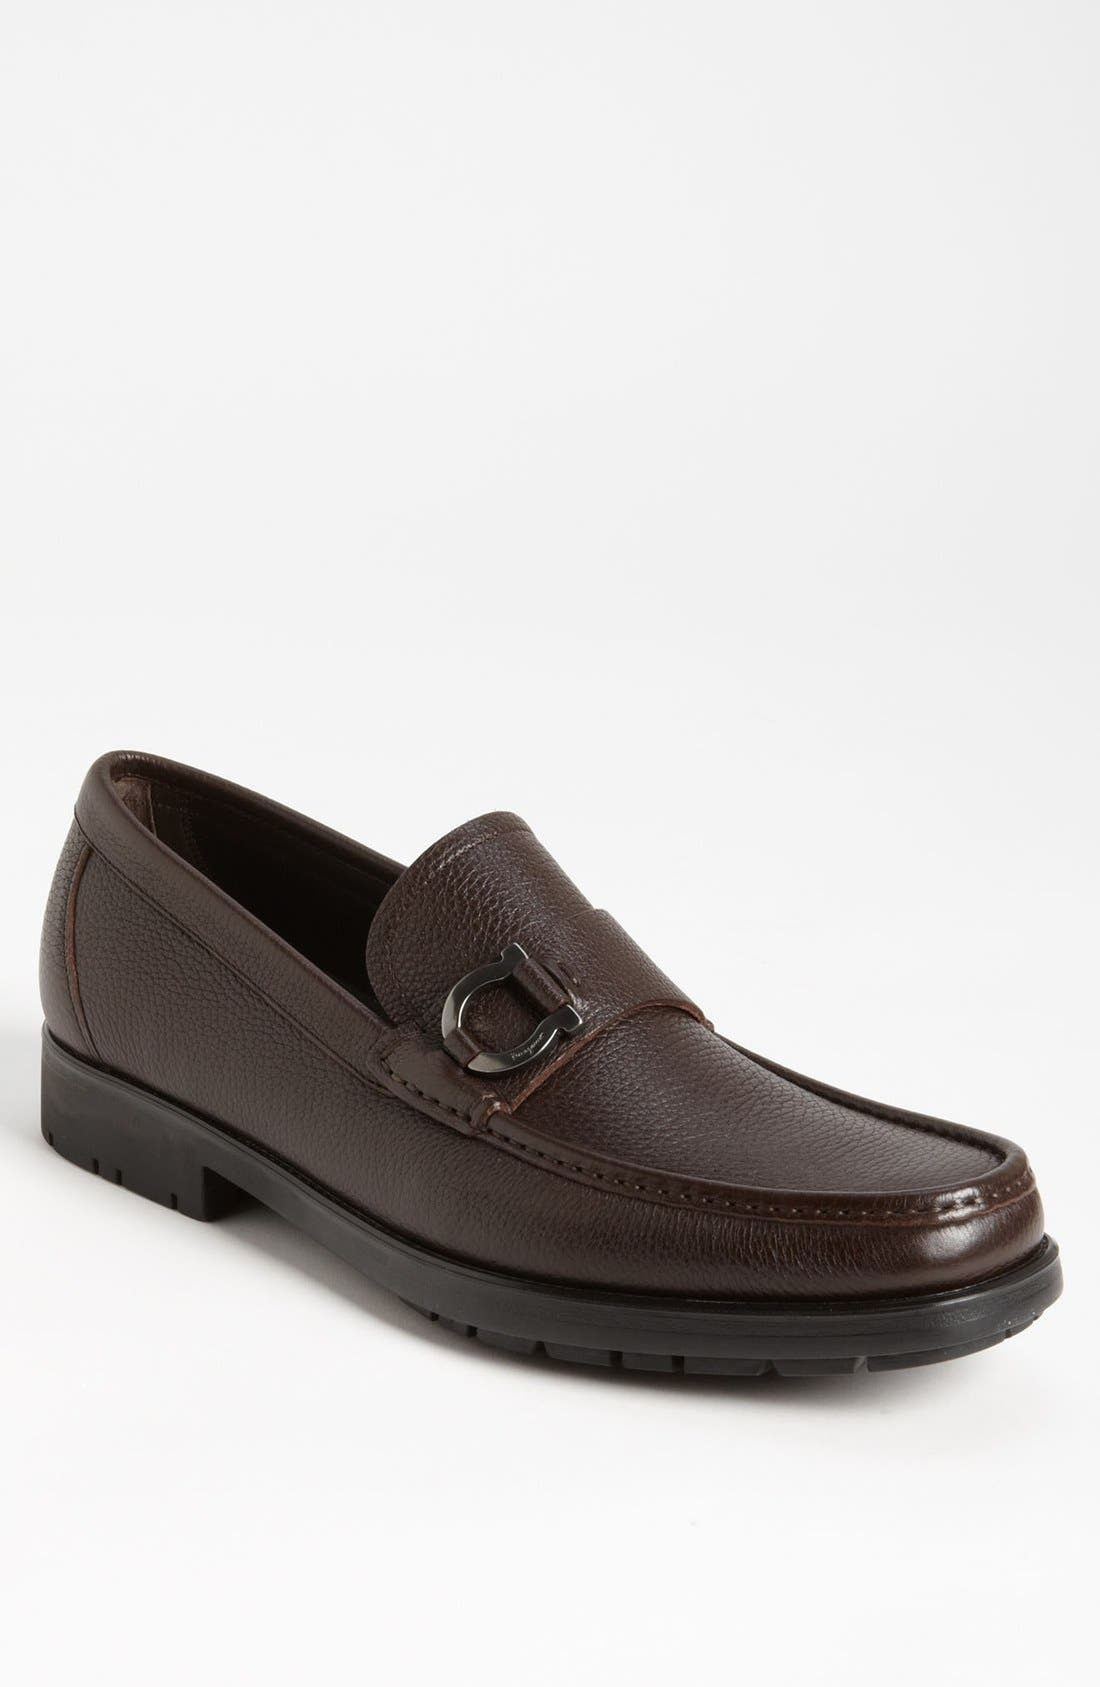 Alternate Image 1 Selected - Salvatore Ferragamo 'Biliardo' Loafer